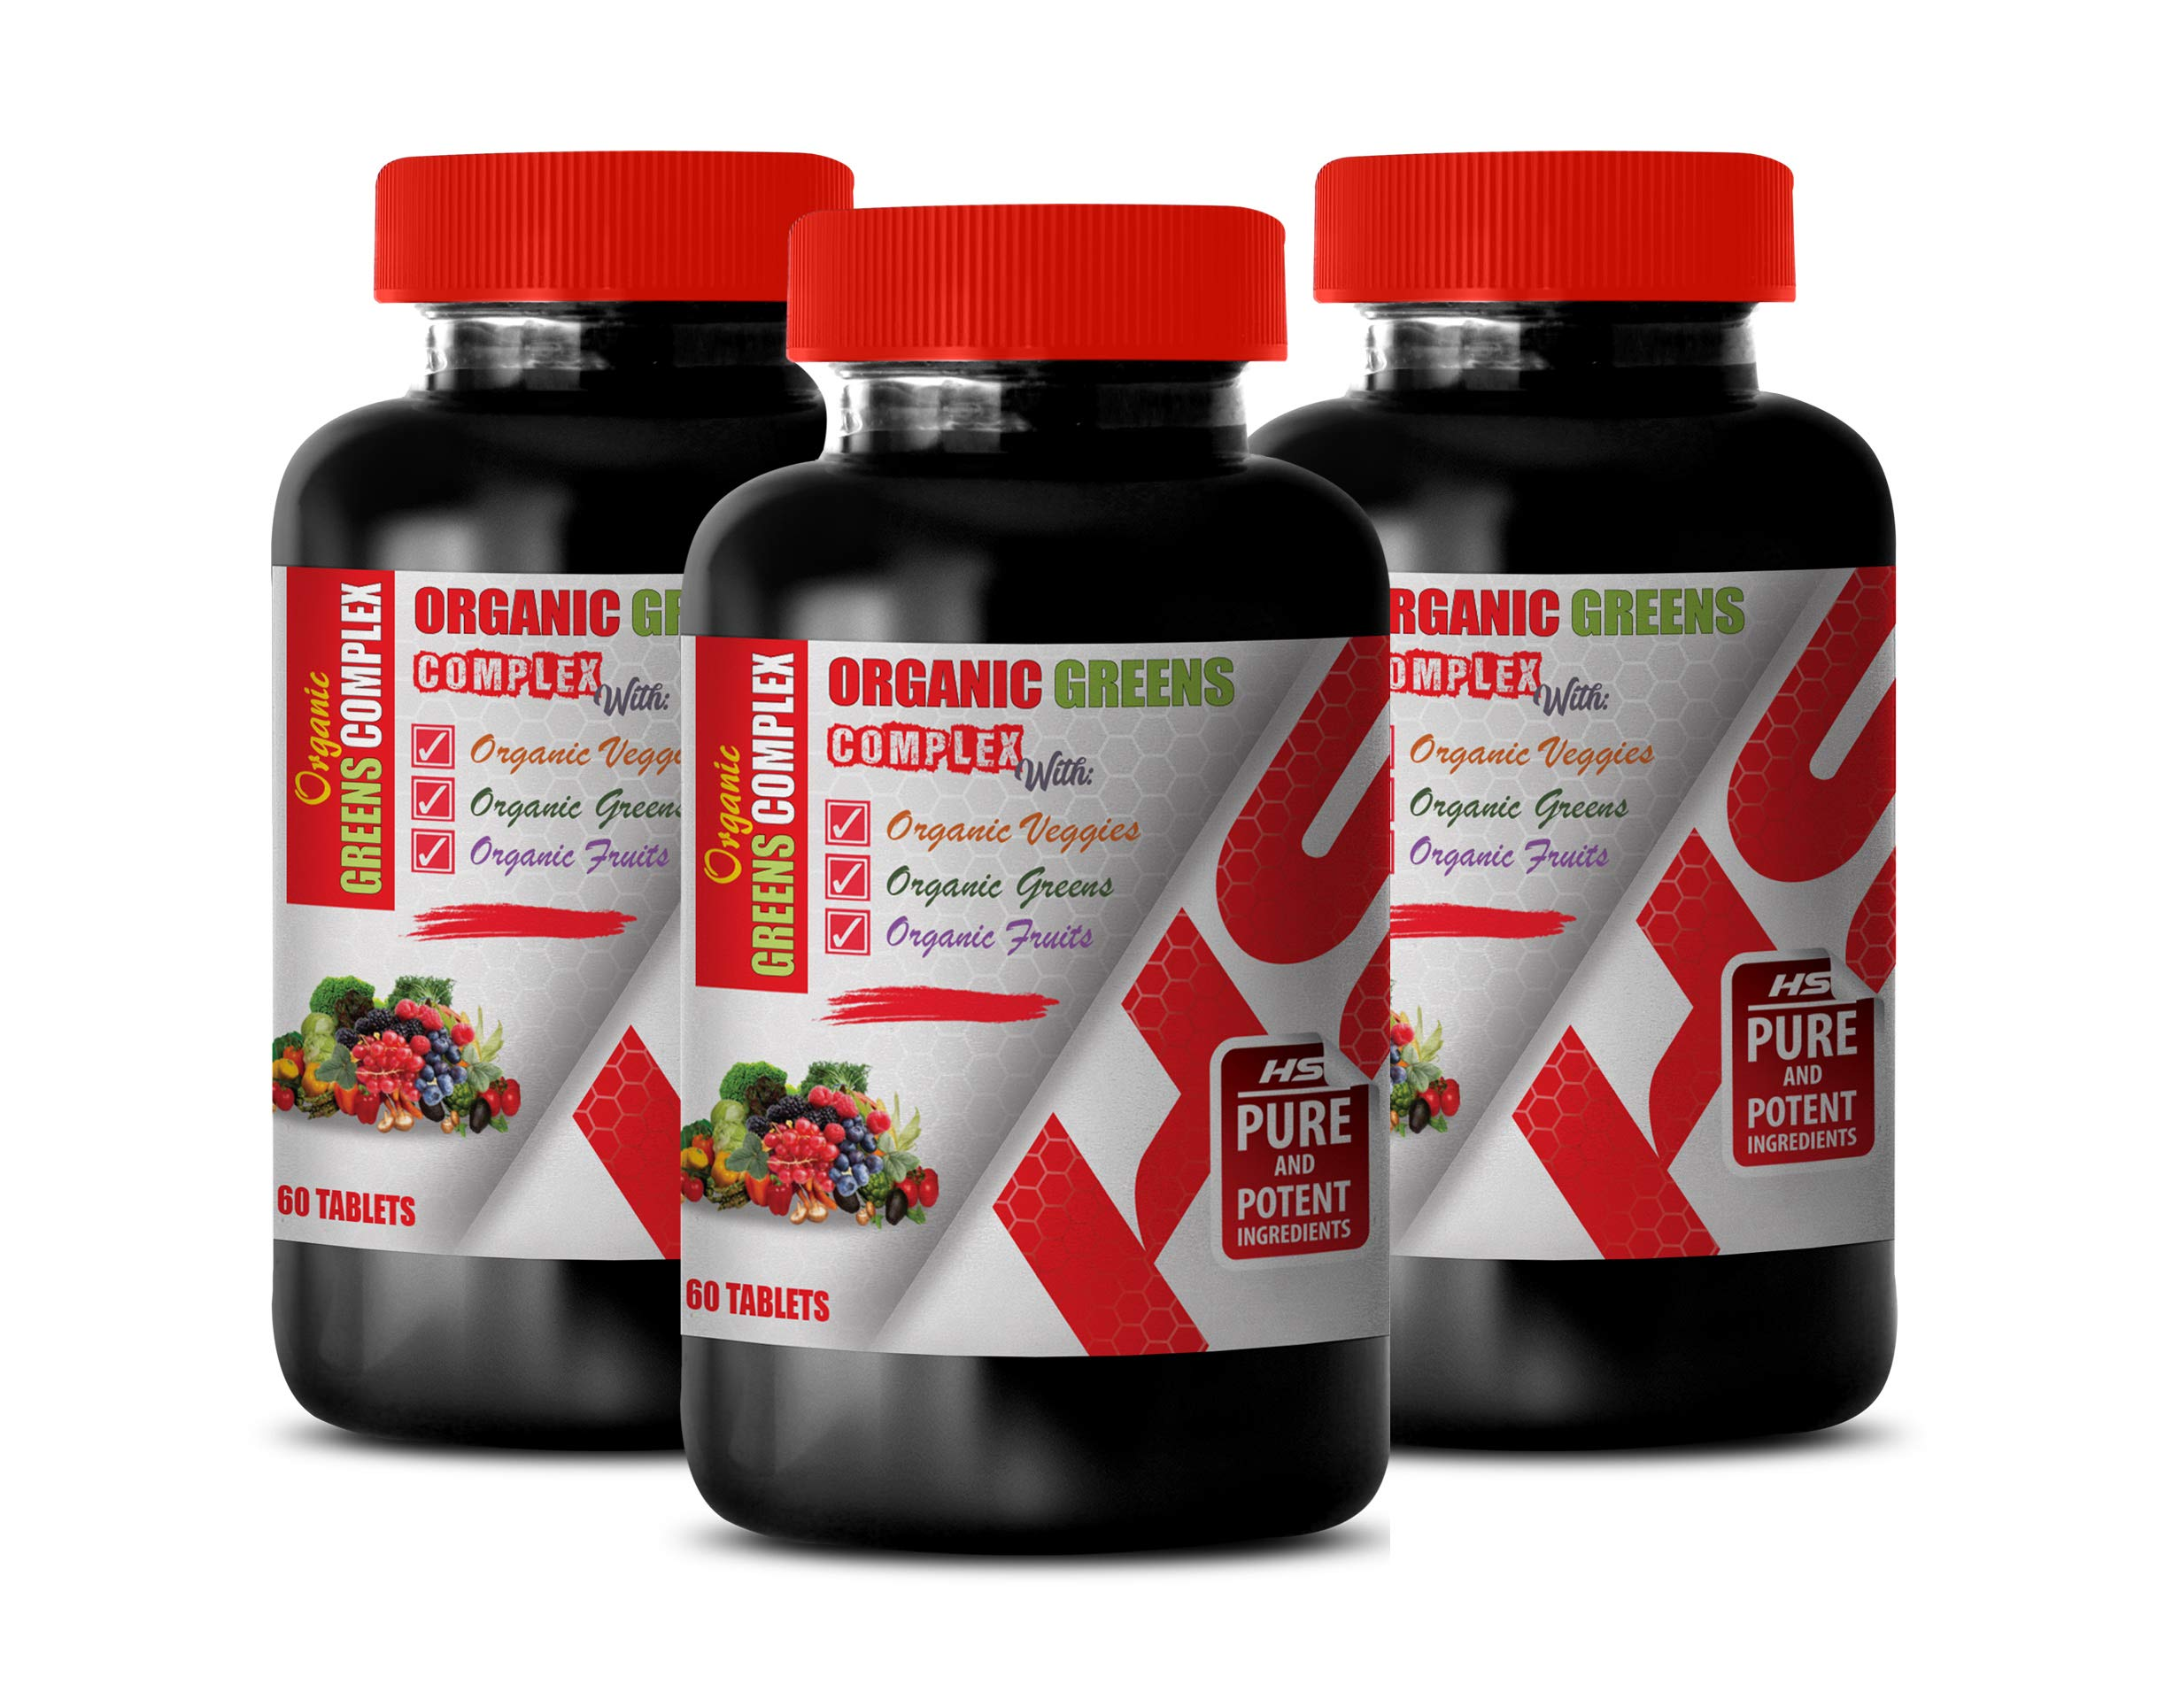 antioxidant Formula Fights Free radicals Tablets - Organic Greens Complex with Veggies, Greens, Fruits - Garlic Supplement for high Blood Pressure - 3 Bottles 180 Tablets